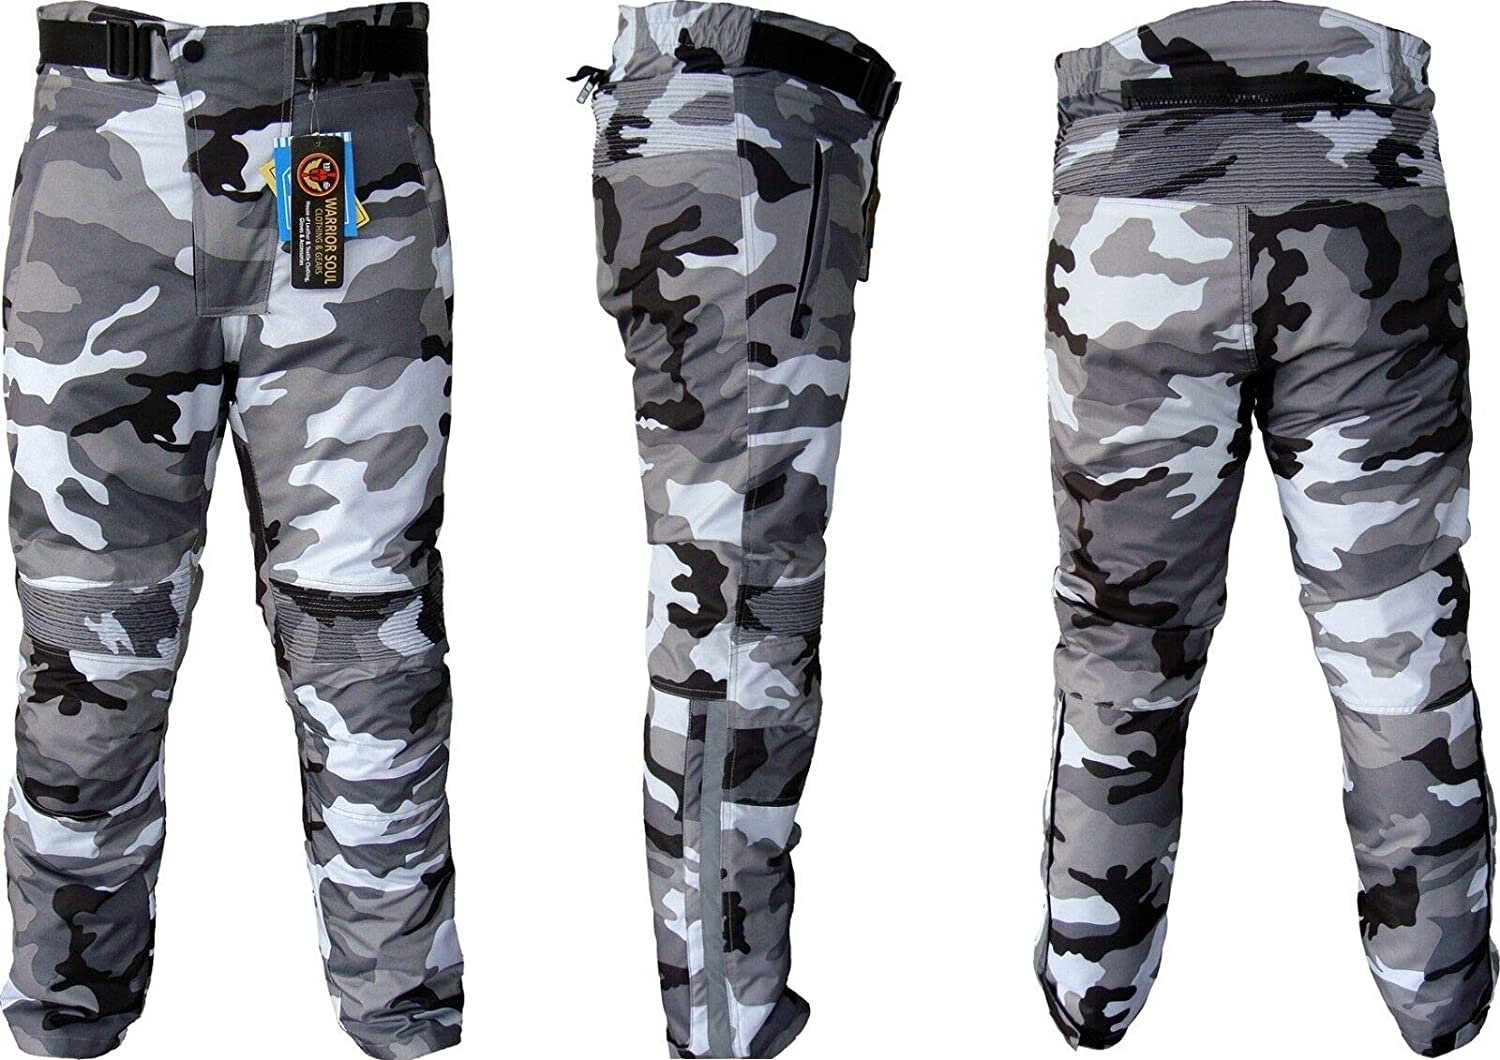 34 /× 31 Color NEW Motorcycle Camouflage Waterproof Motorbike Motocross Textile Armour Trouser Size Army Blue Camo